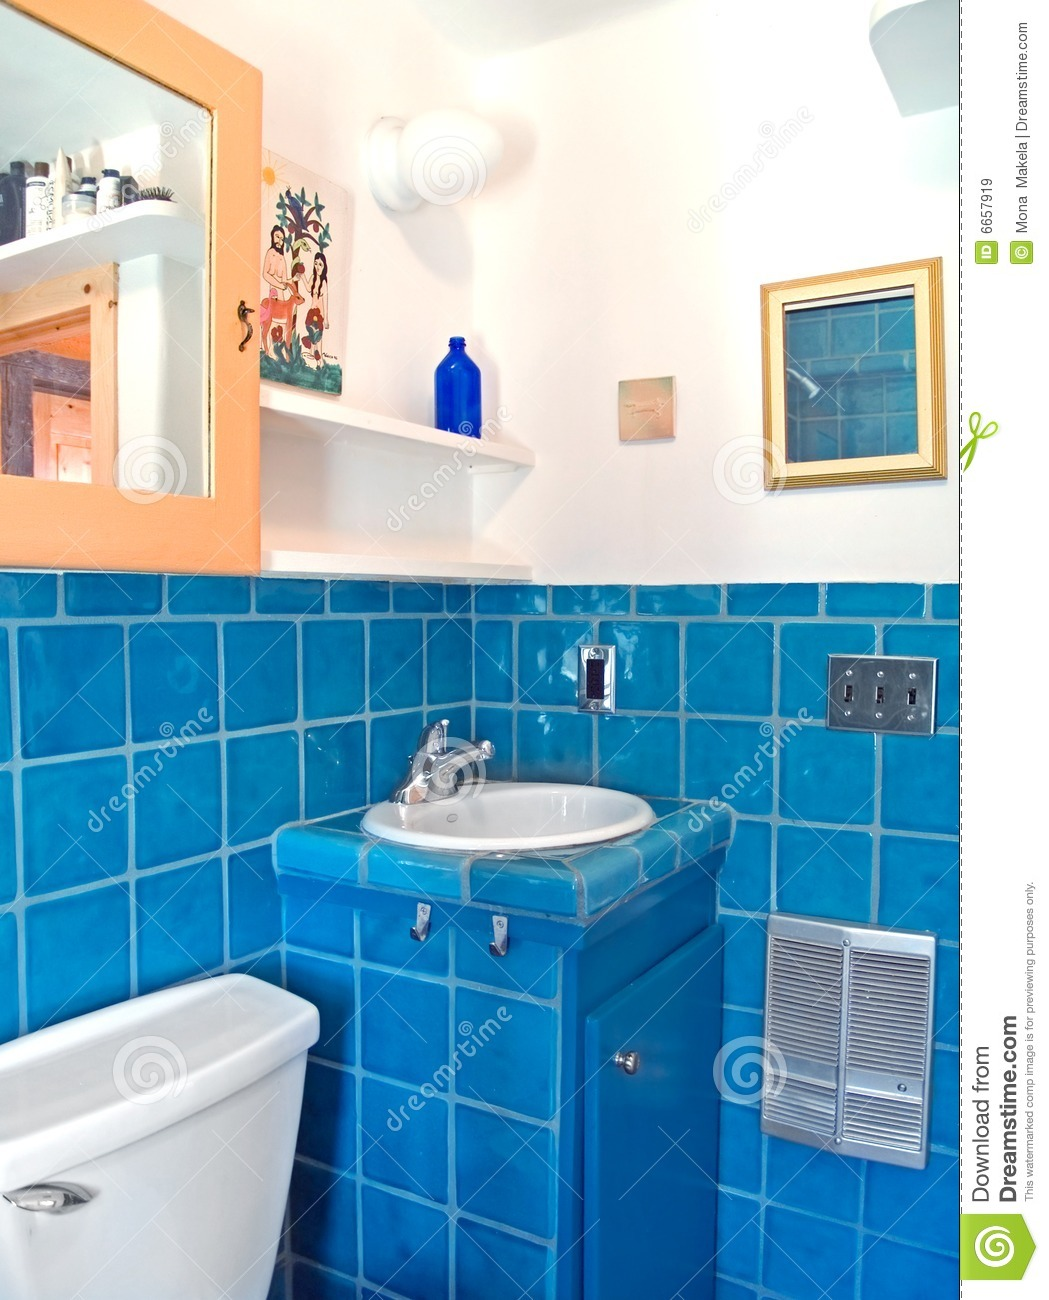 Turquoise Tile Work In A Bathroom Stock Image Image 6657919